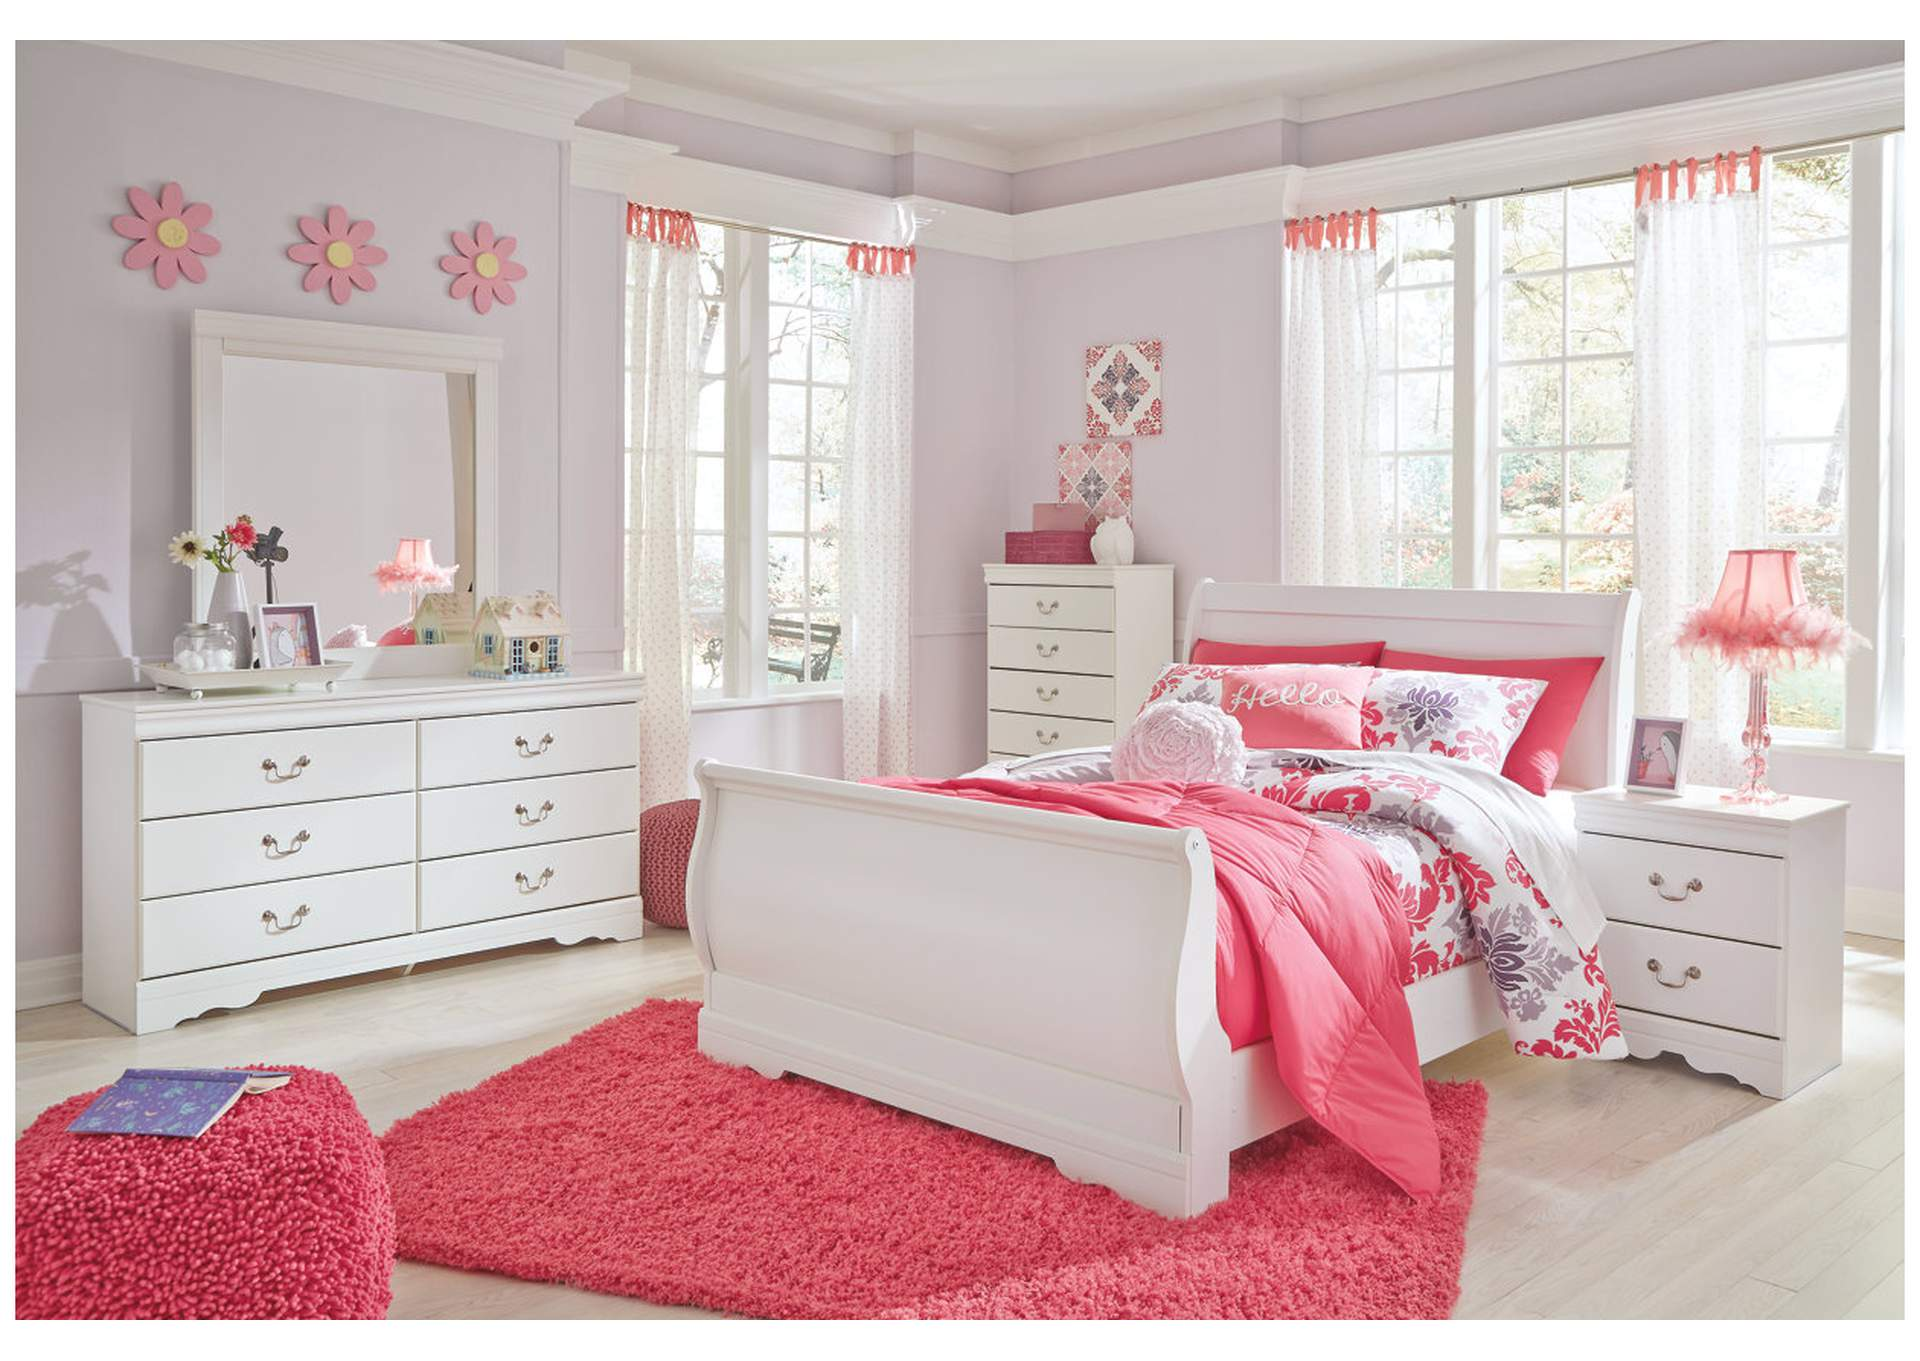 Anarasia White Full Sleigh Bed w/Dresser, Mirror & Drawer Chest,Signature Design By Ashley